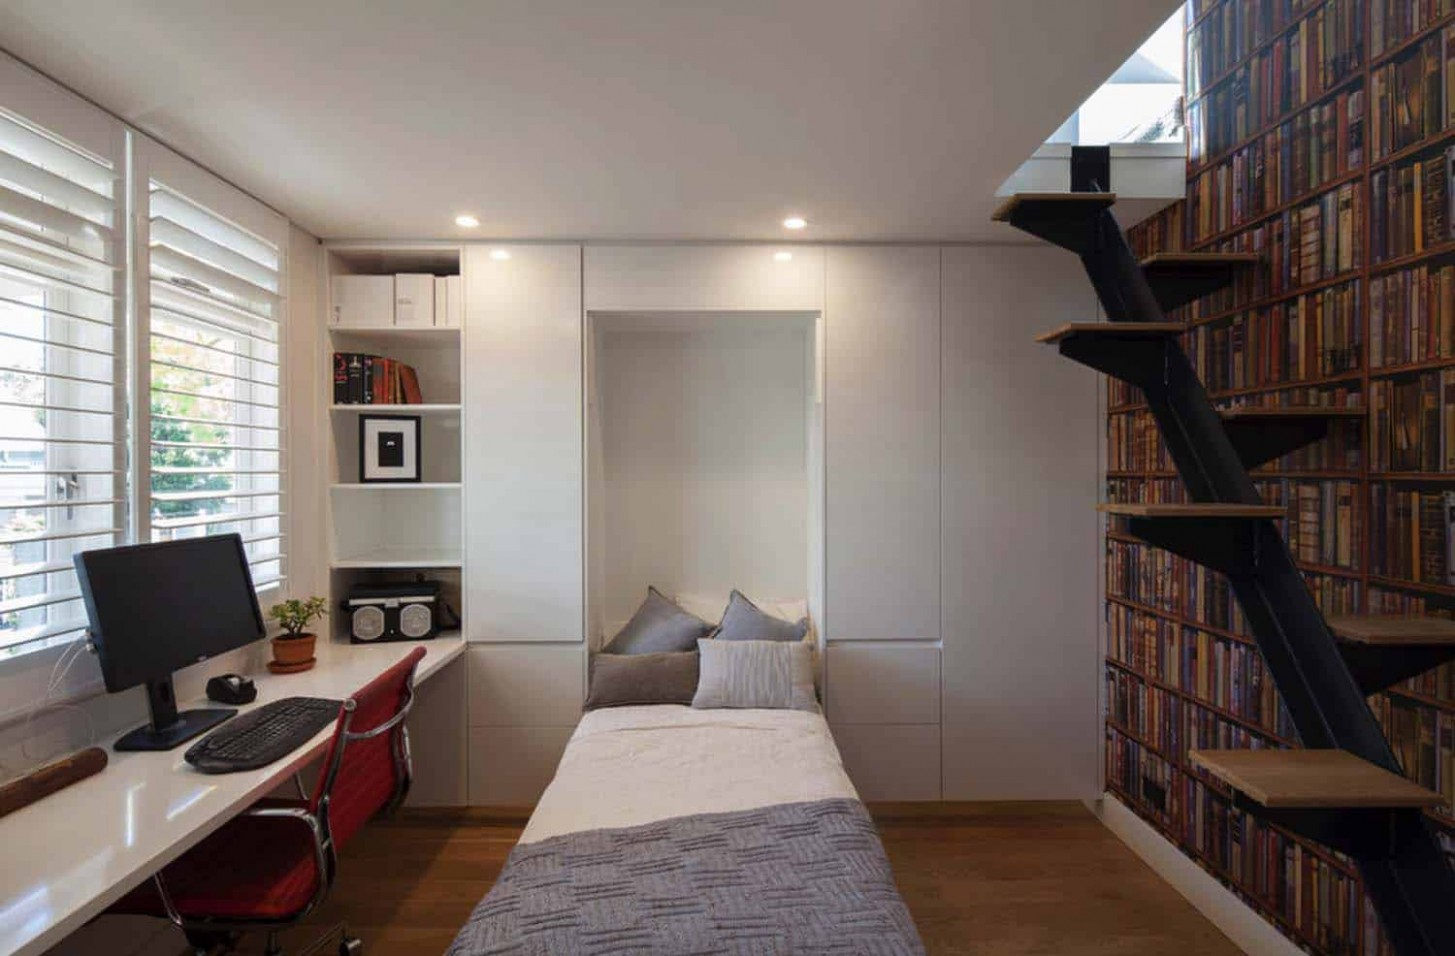 9 Fabulous ideas for a home office in the bedroom - Home Office Ideas In Bedroom